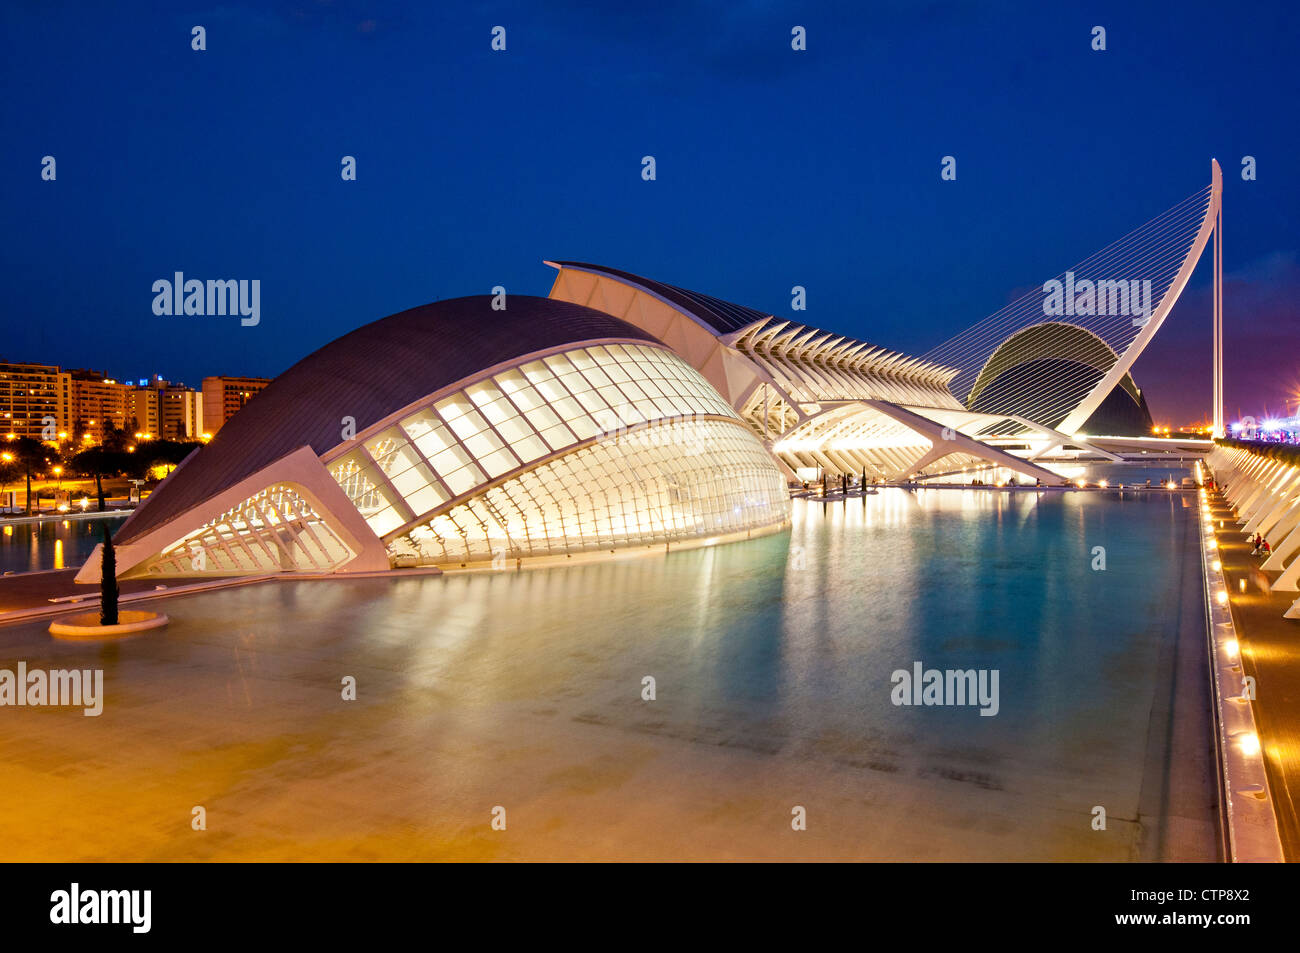 Night view of Ciudad de las Artes y las Ciencias (City of Arts and Sciences), Valencia, Spain - Stock Image